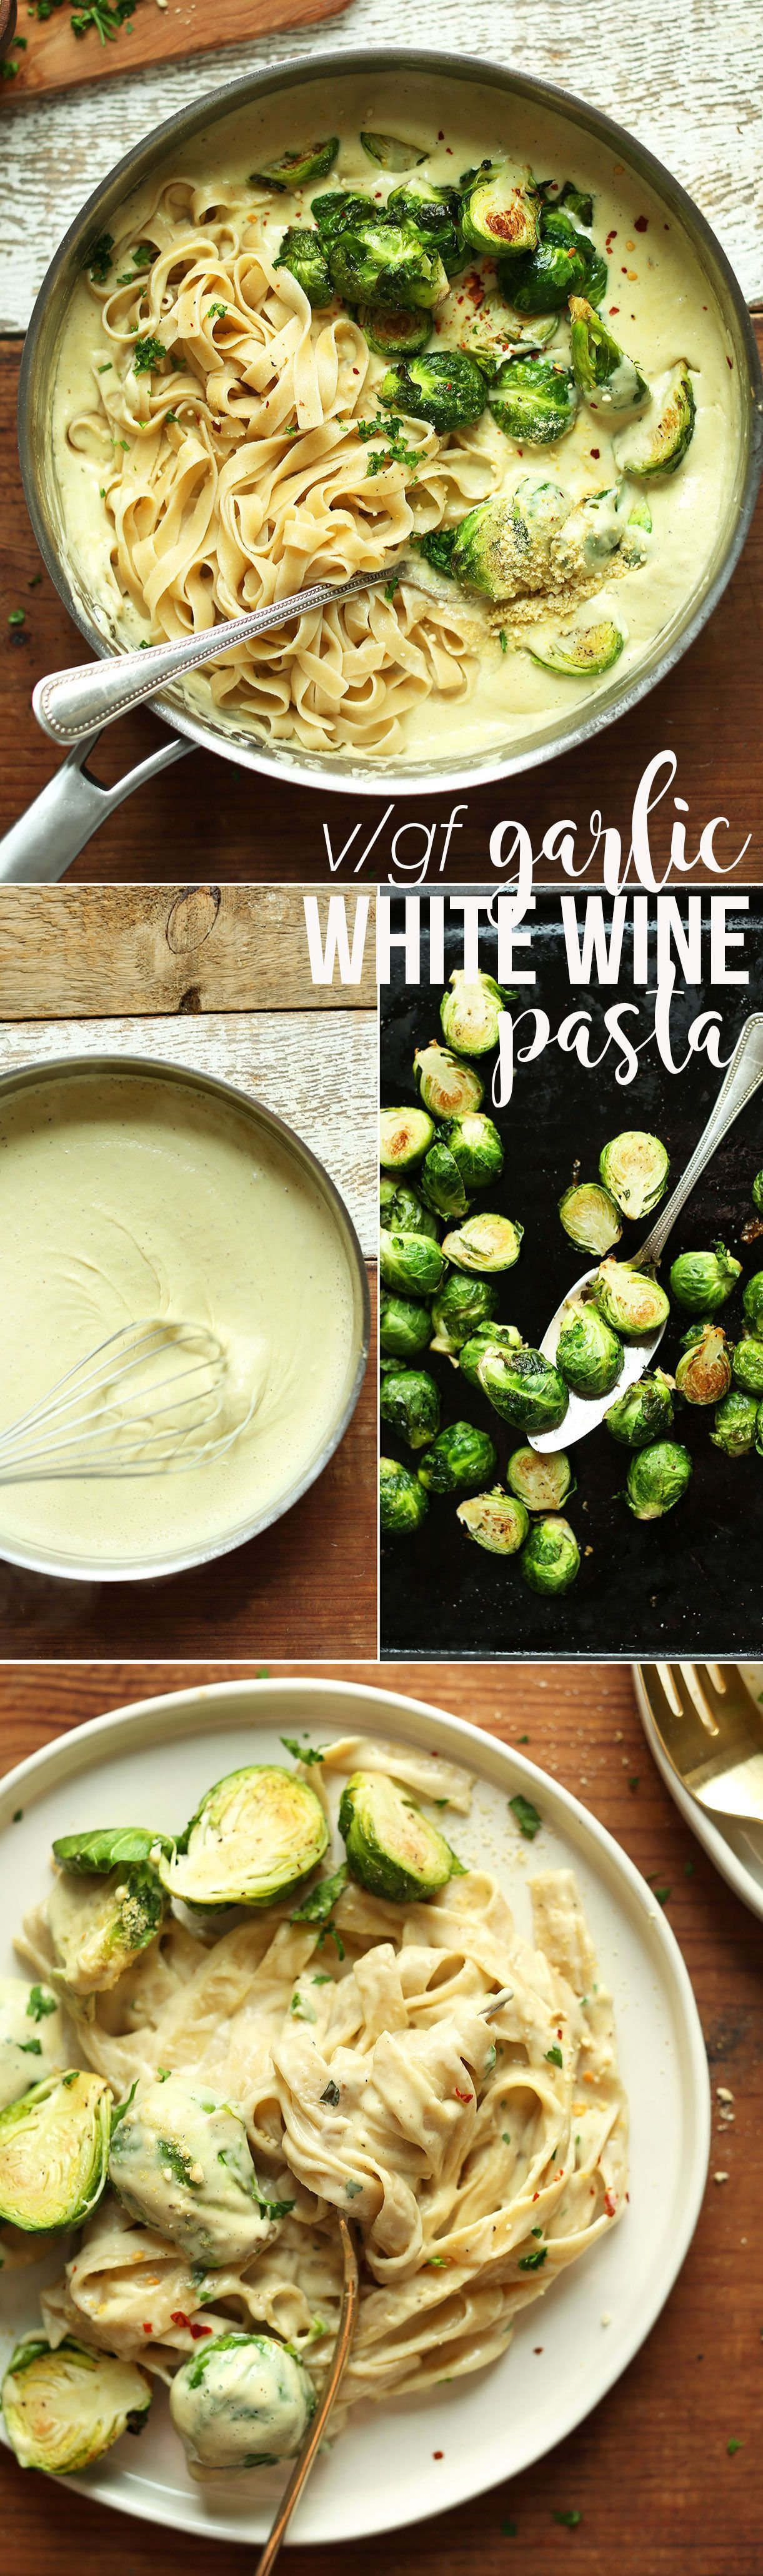 30-minute Garlic & White Wine Pasta with Roasted Brussels Sprouts! Flavorful, hearty, wholesome! Garlic & White Wine Pasta with Roasted Brussels Sprouts! Flavorful, hearty, wholesome!